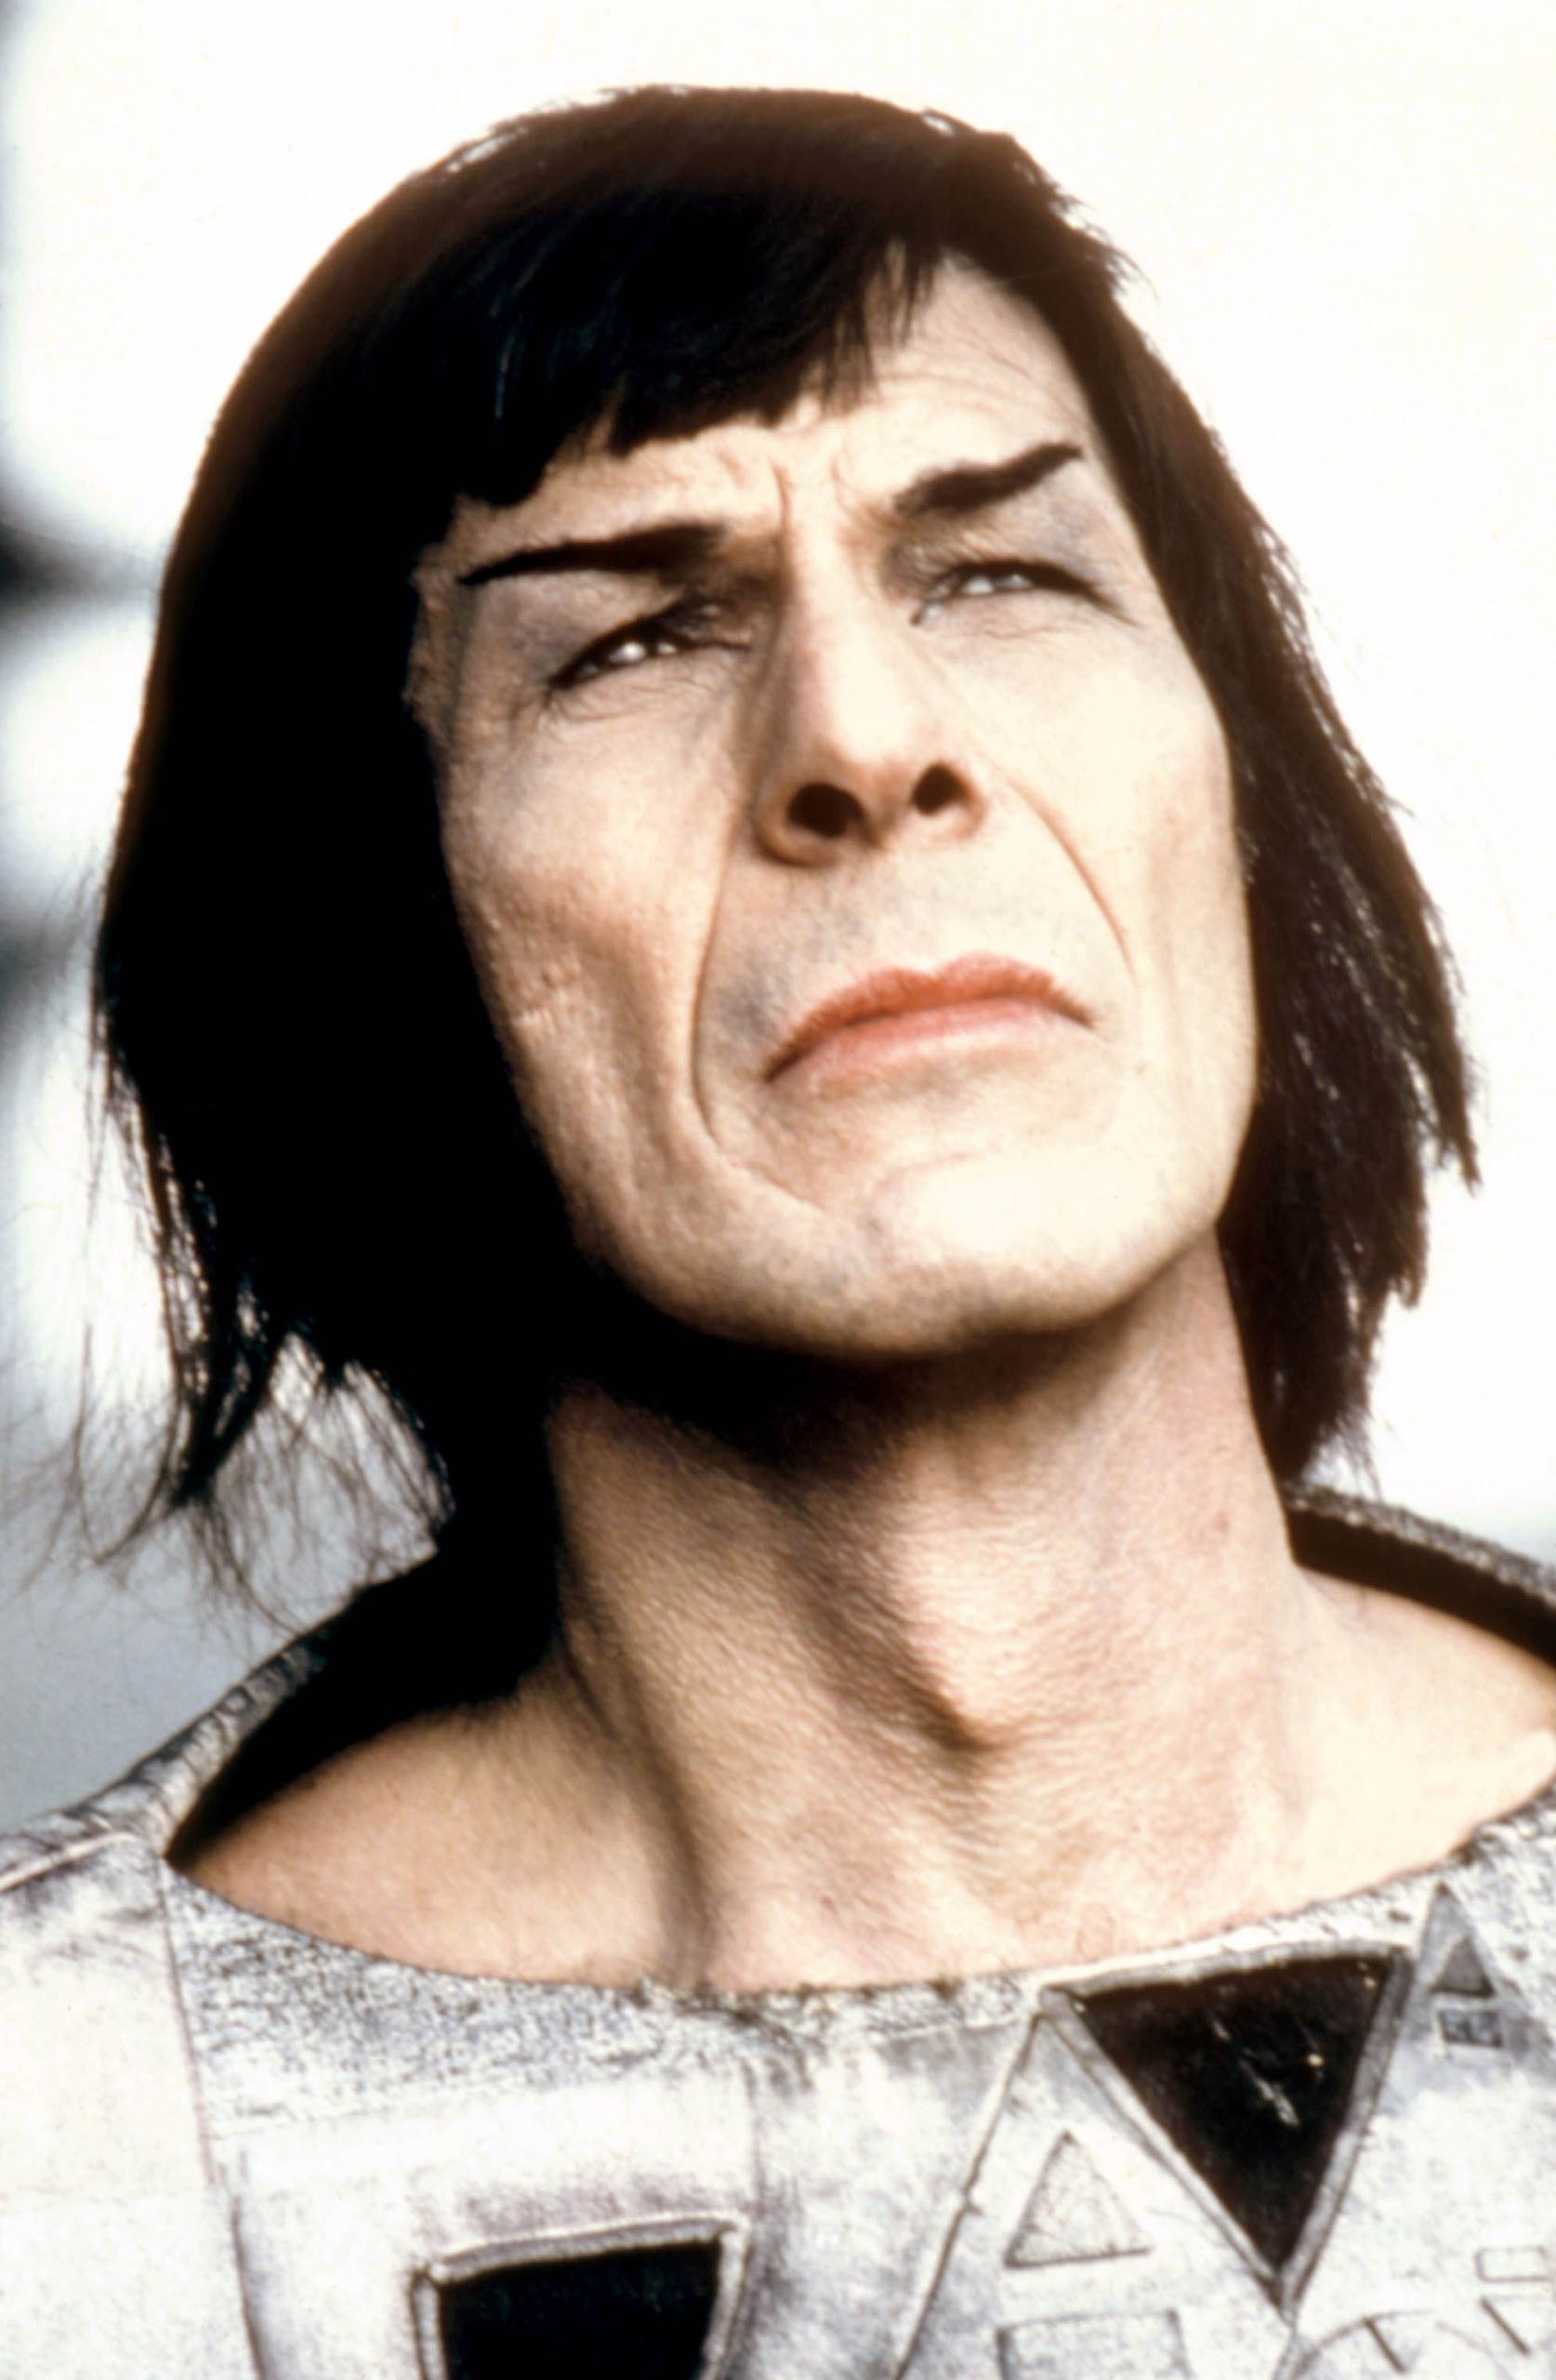 Leonard Nimoy as Mr. Spock in <i>Star Trek III: The Search for Spock</i> in 1984.